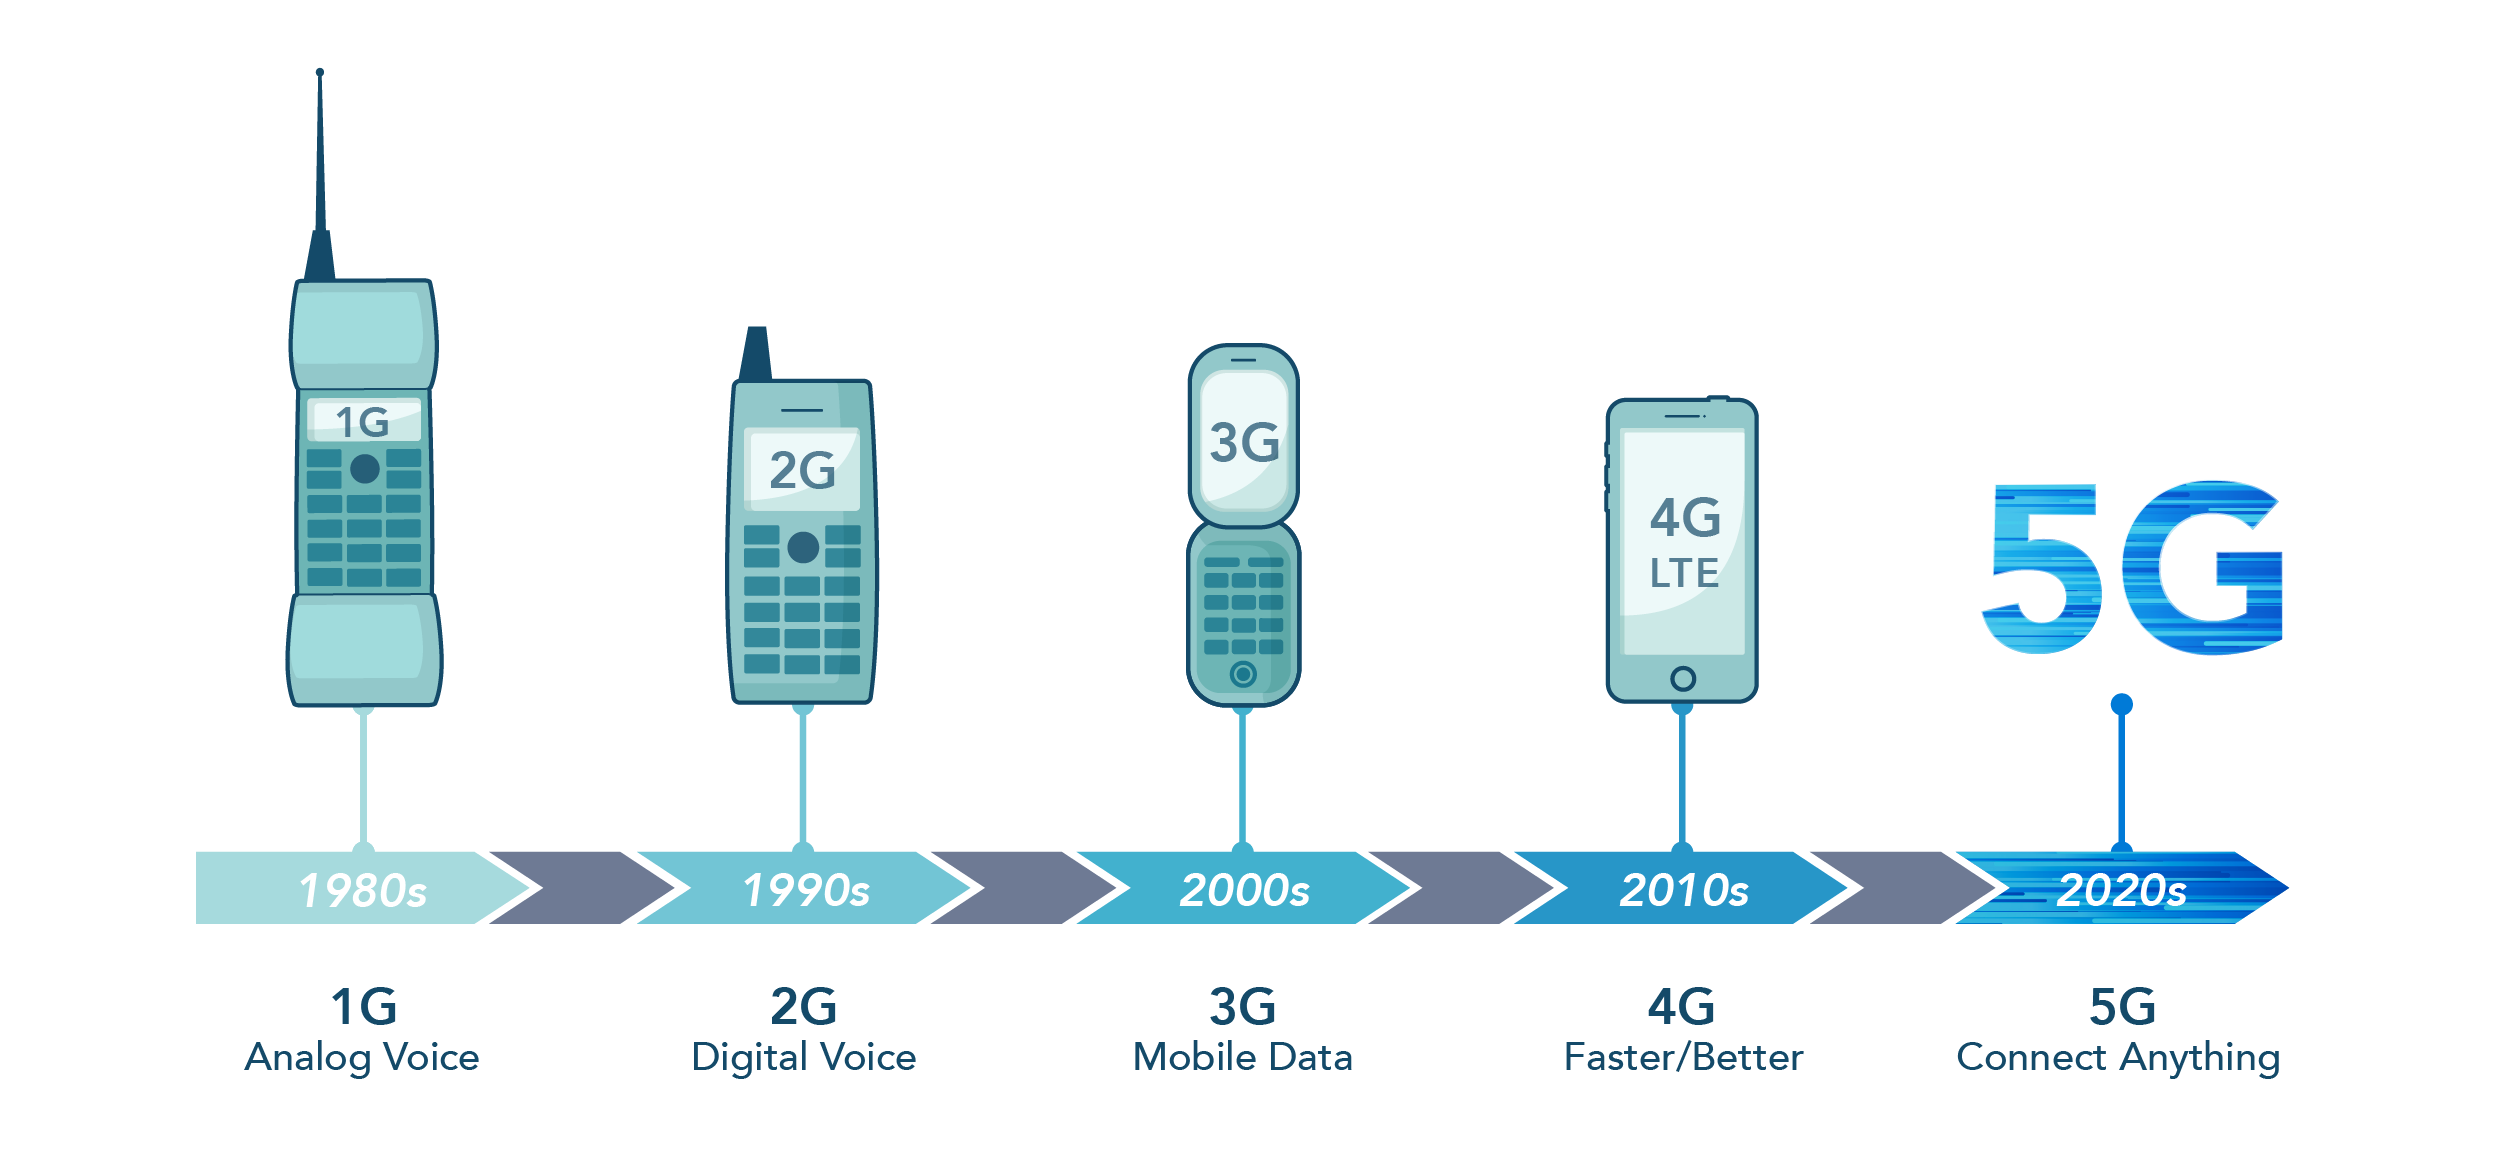 mobile evolution from 1G to 5G